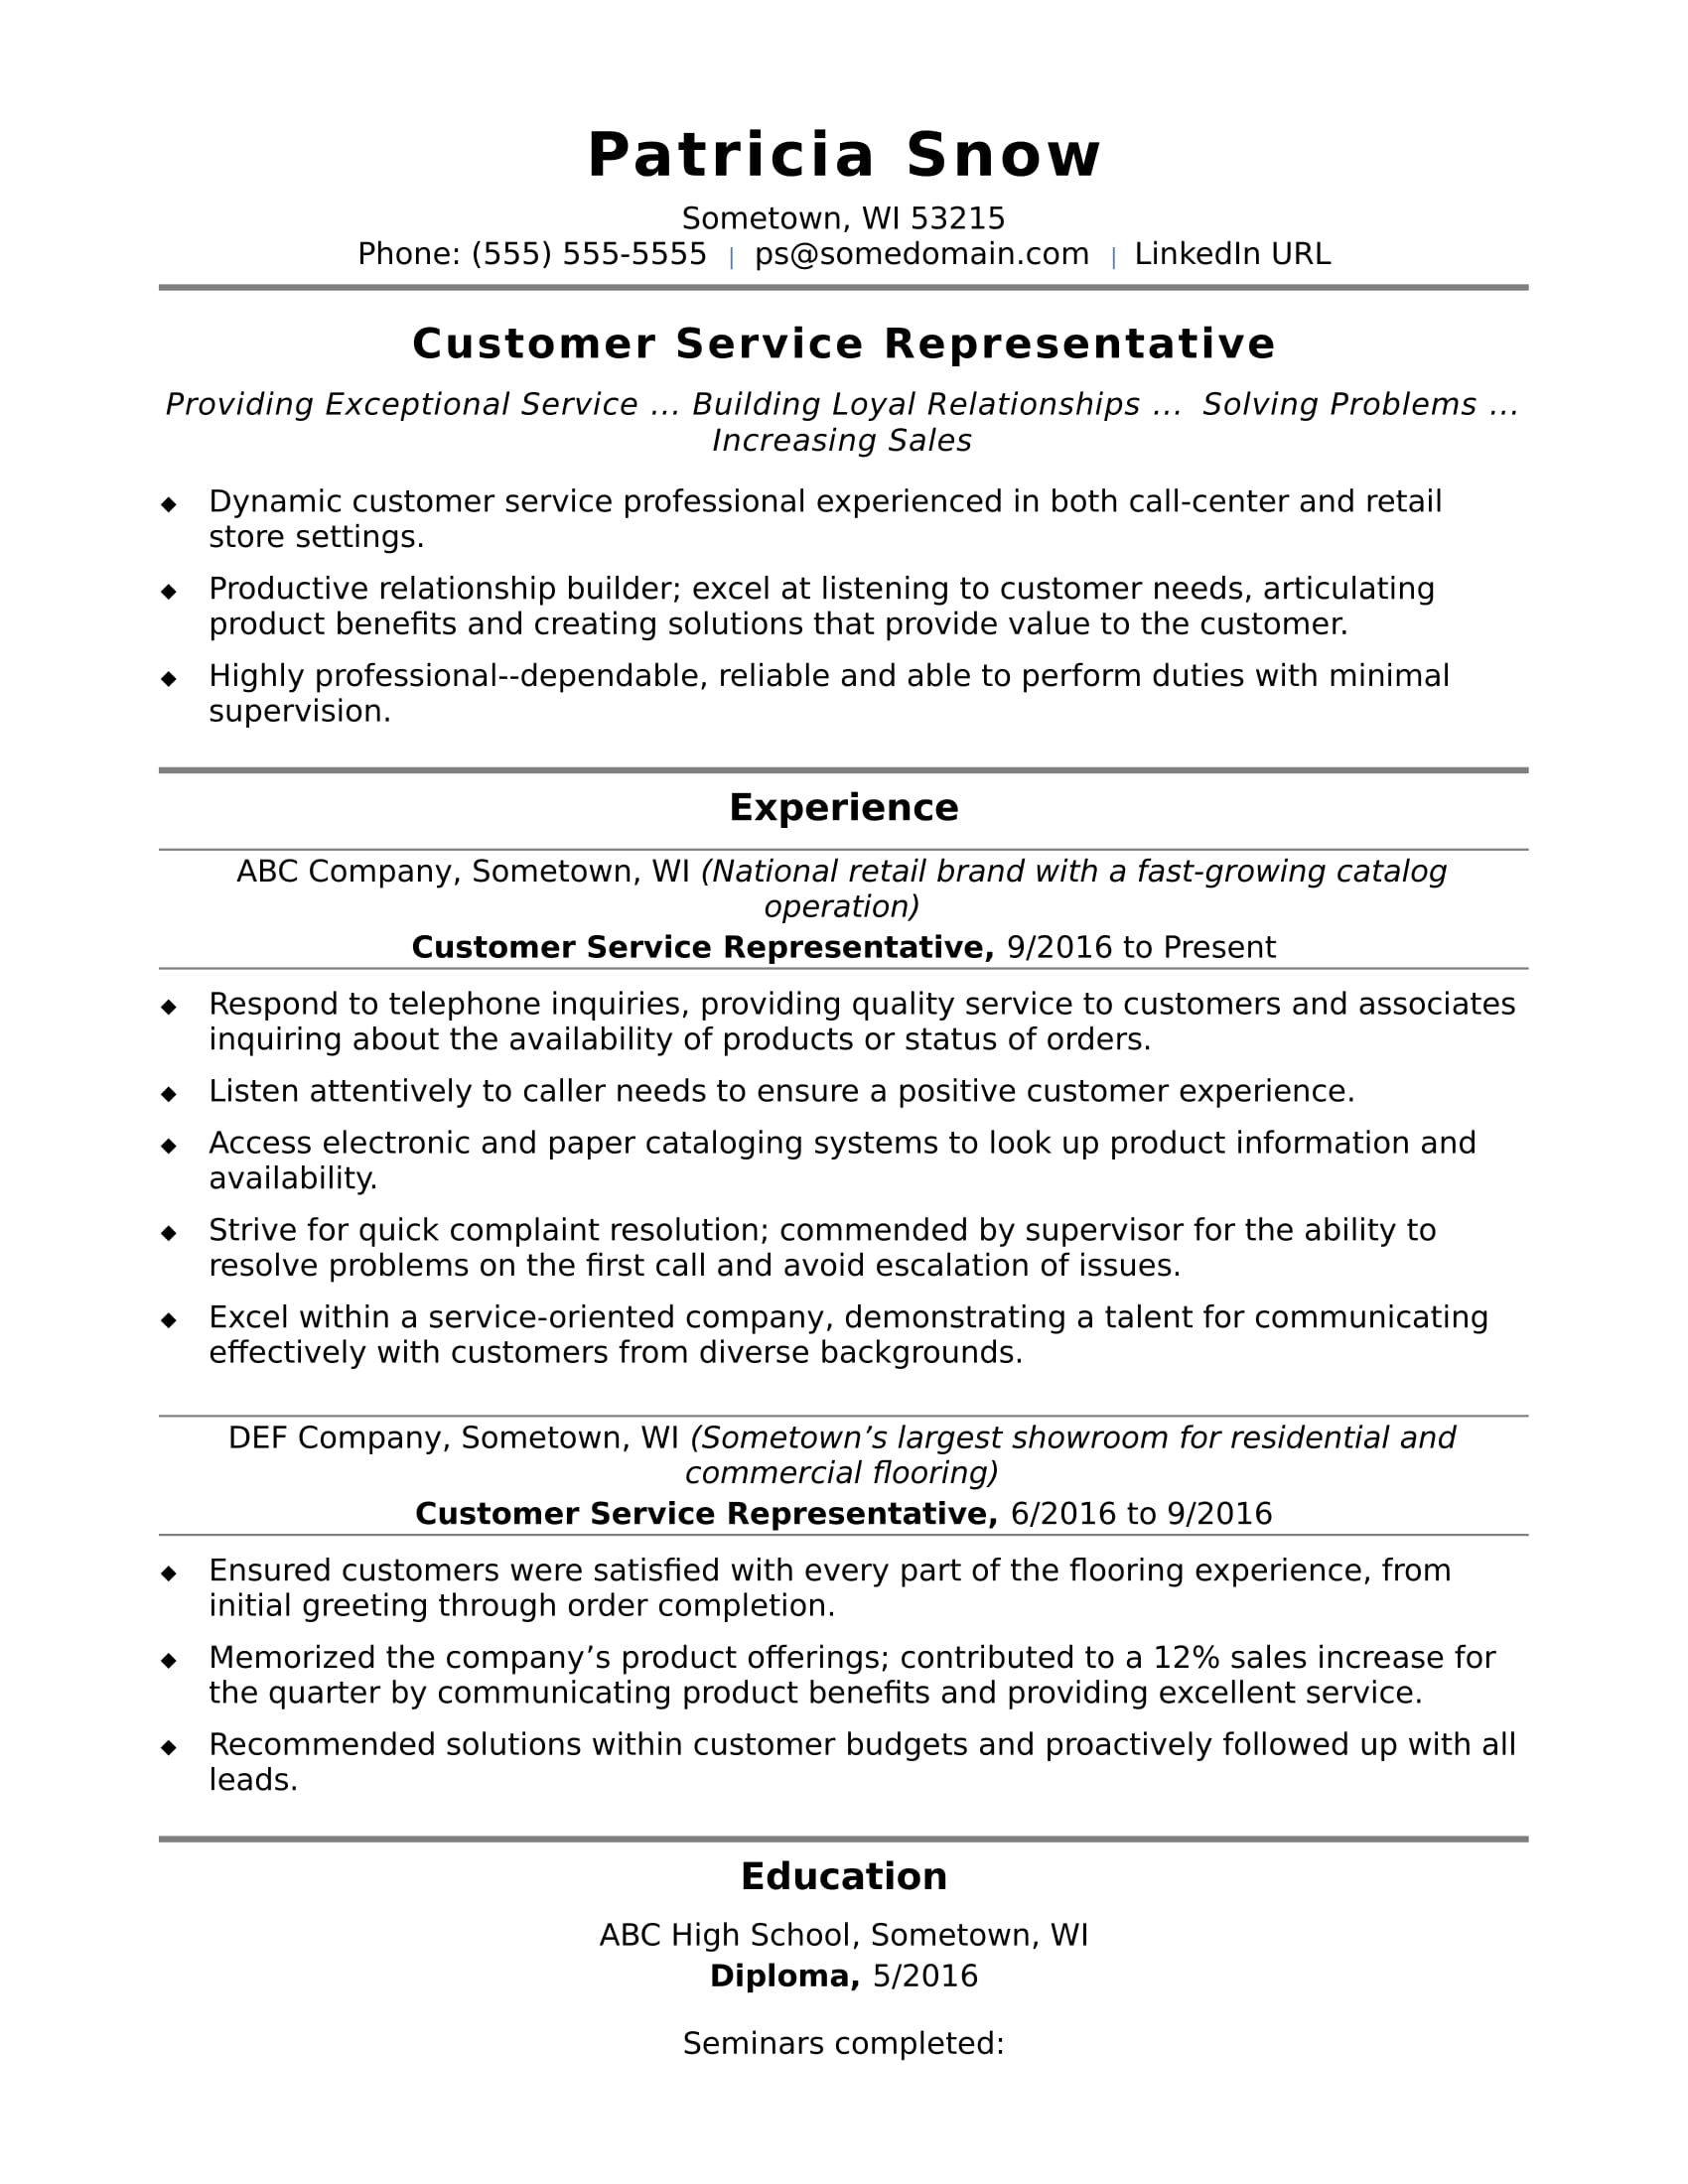 customer service representative resume sample monster professional summary for entry Resume Customer Service Professional Summary For Resume